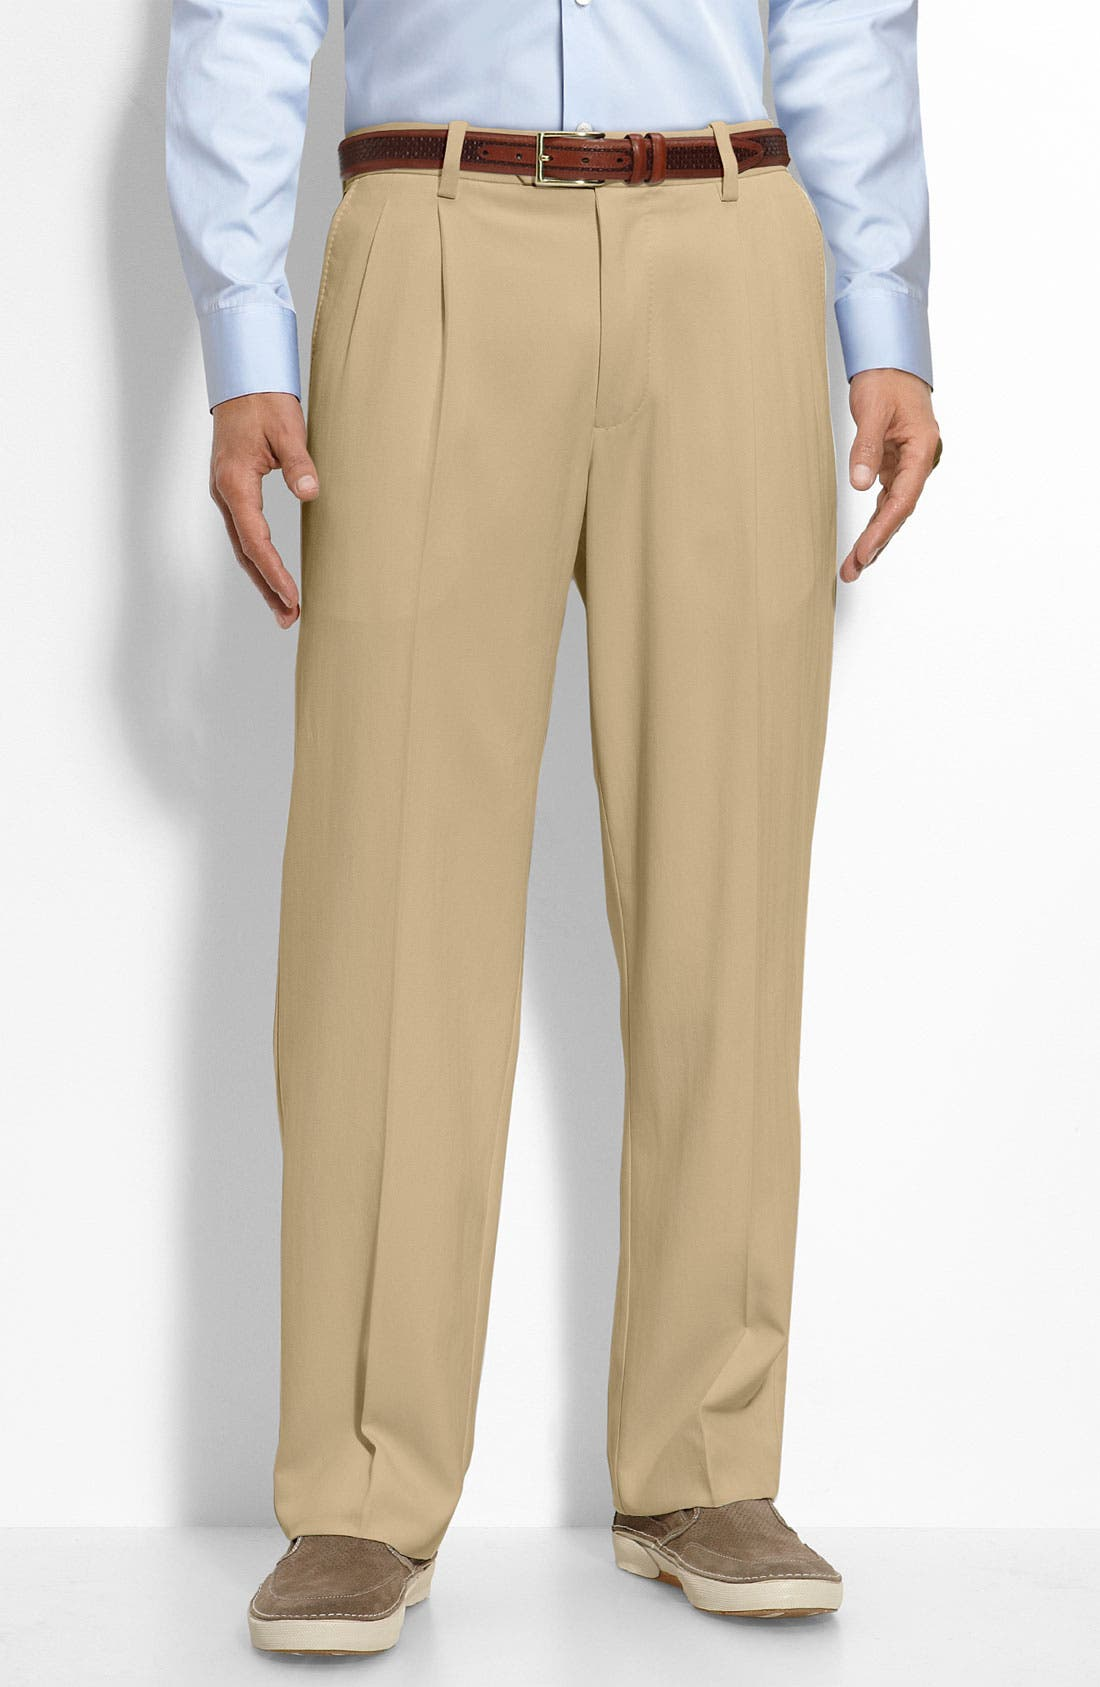 Alternate Image 1 Selected - Tommy Bahama 'Flying Fishbone' Pleated Pants (Big & Tall)